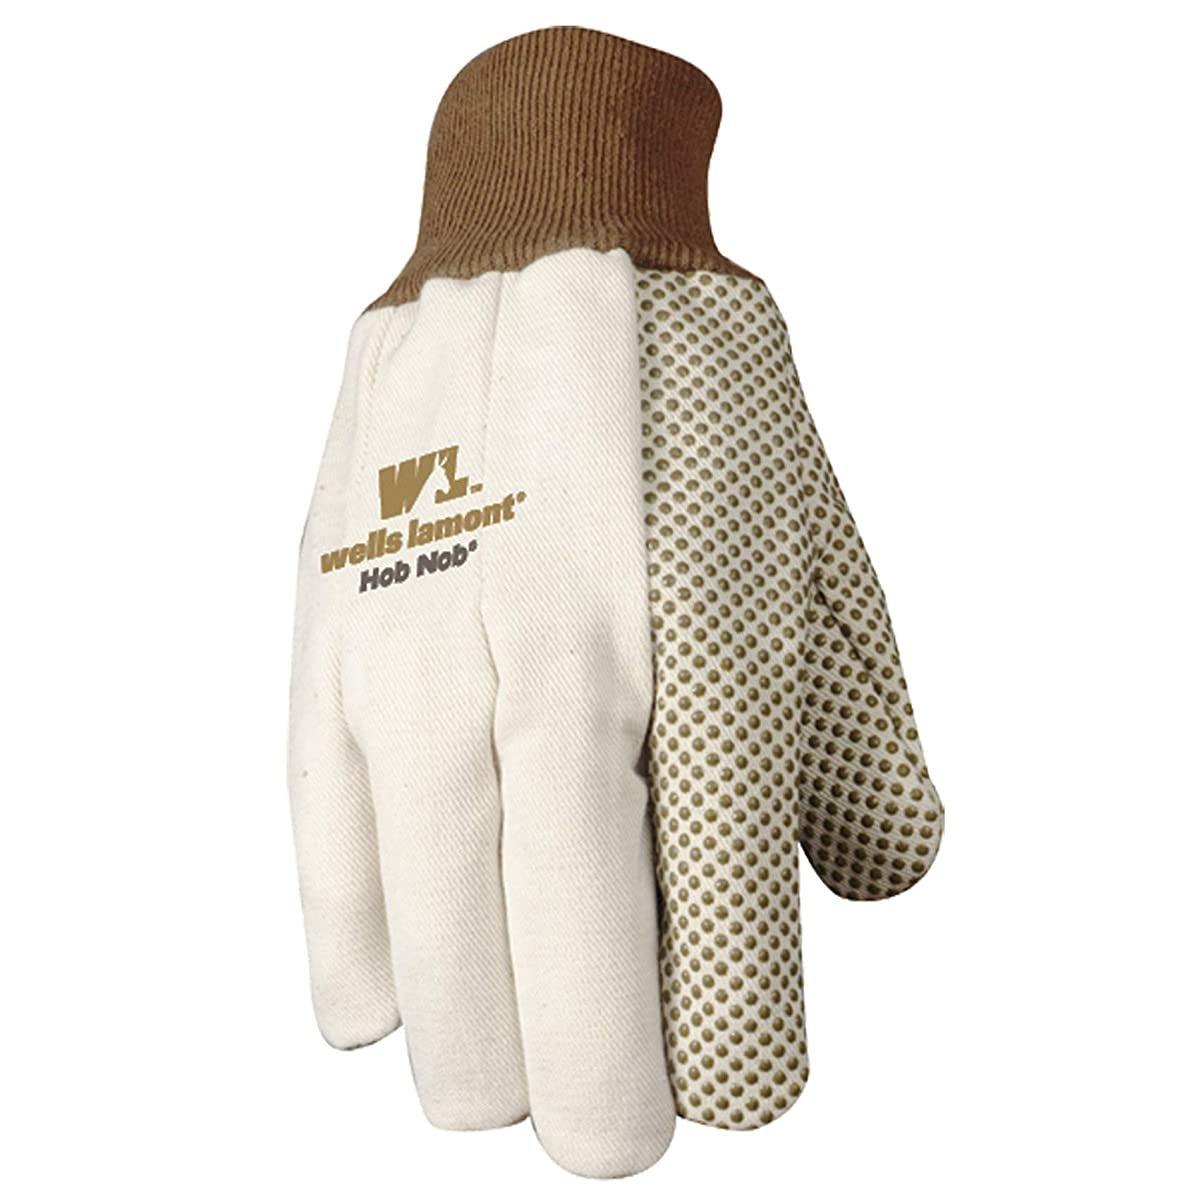 Wells Lamont Jersey Work Gloves with Hob Nob Dots, Wearpower, Basic, One Size (310)